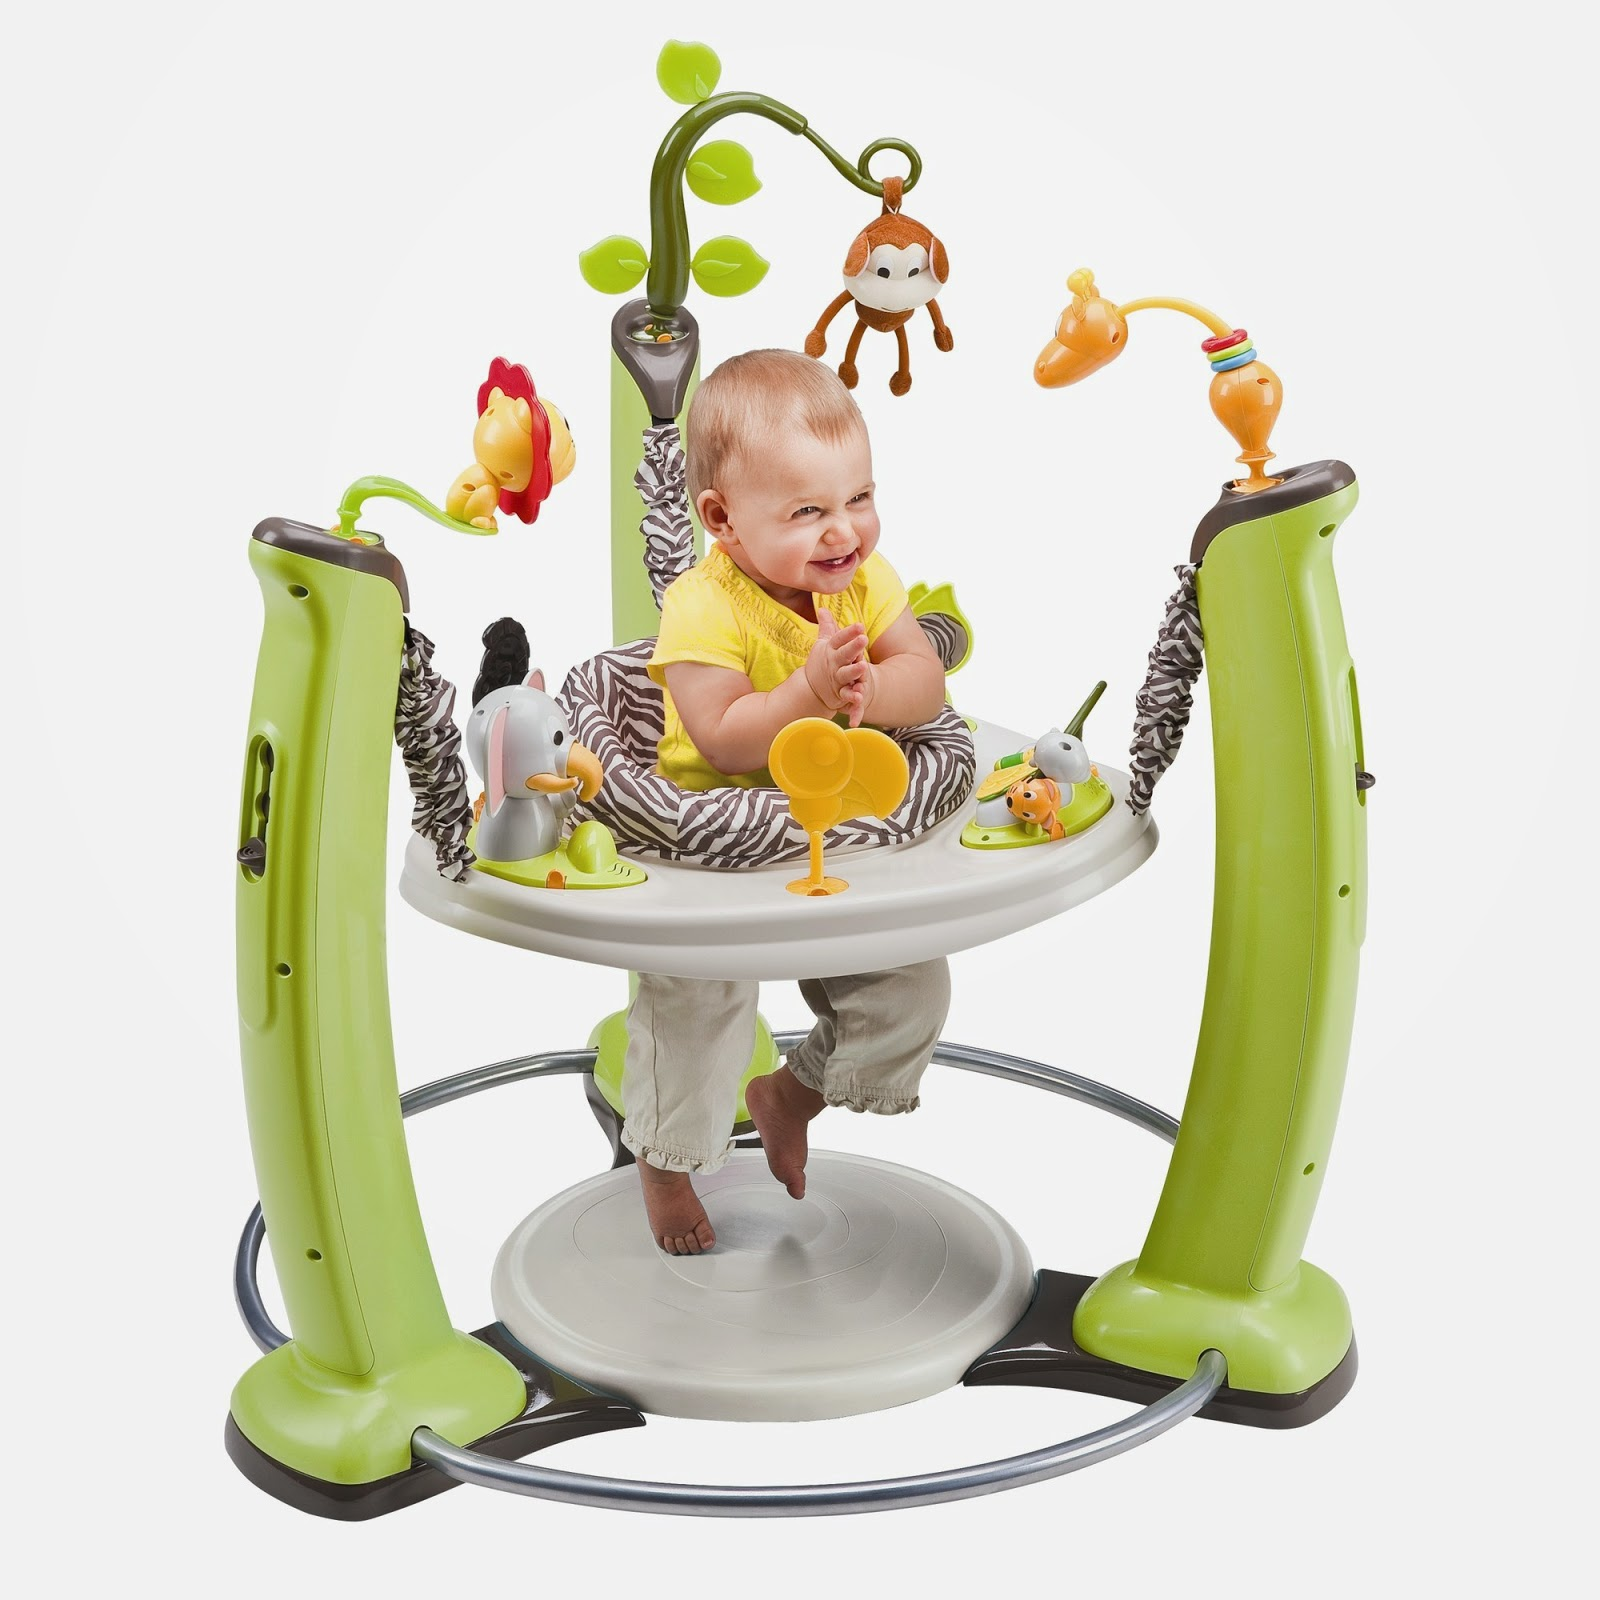 http://www.wayfair.com/Evenflo-ExerSaucer-Jump-and-Learn-Stationary-Jungle-Quest-Bouncer-EVF1377.html